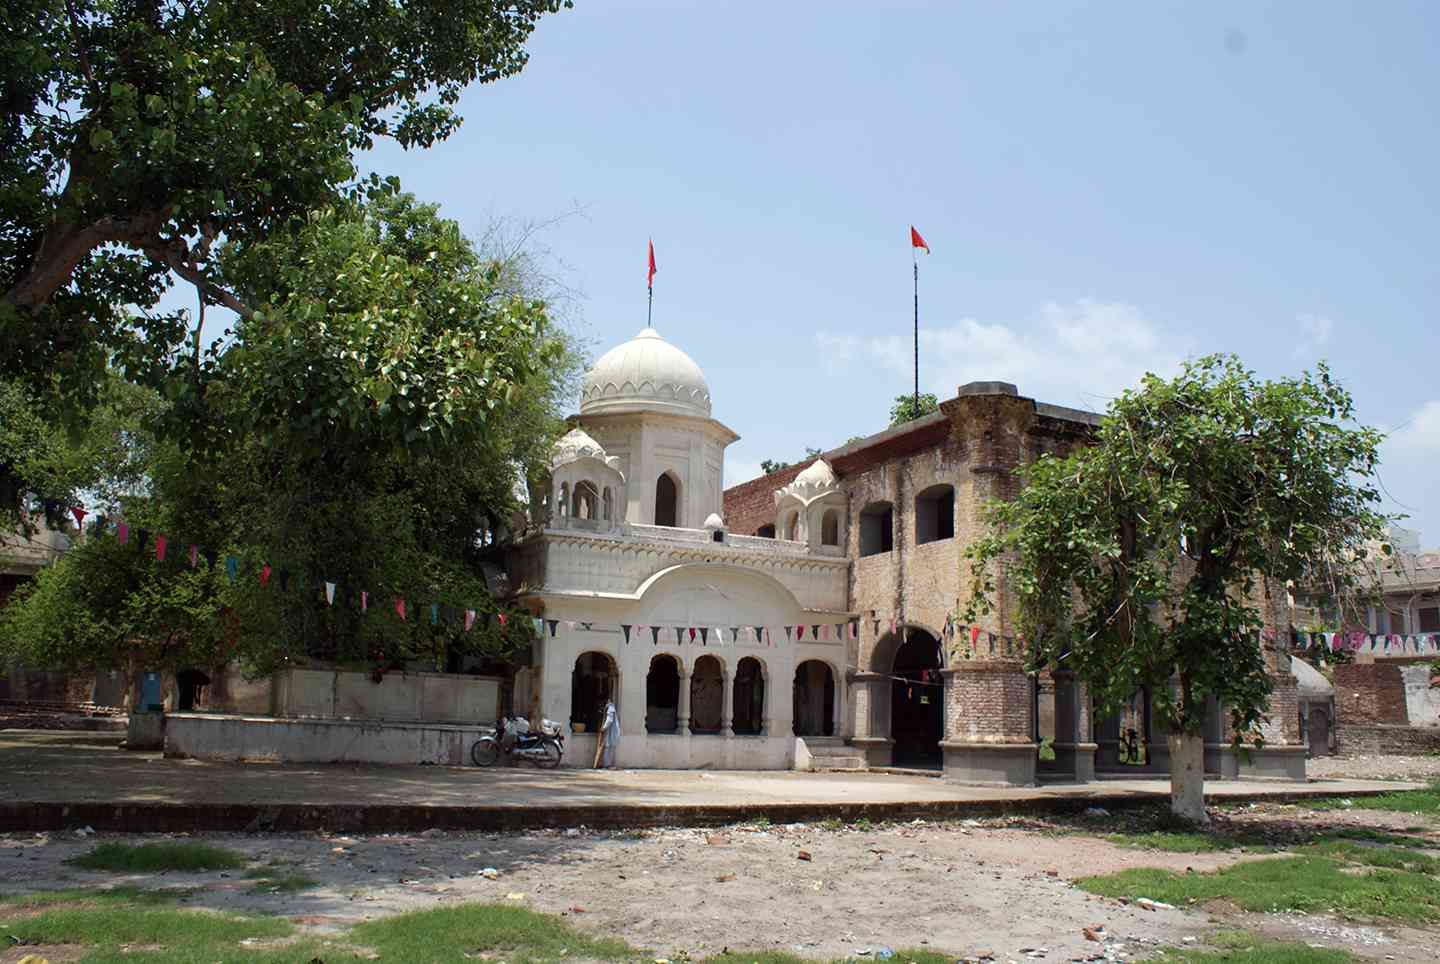 At the Gurdwara Beri Sahib in Sialkot stands a berry tree that has acquired special significance because of its connection with Guru Nanak. (Credit: Iqbal Qaiser)